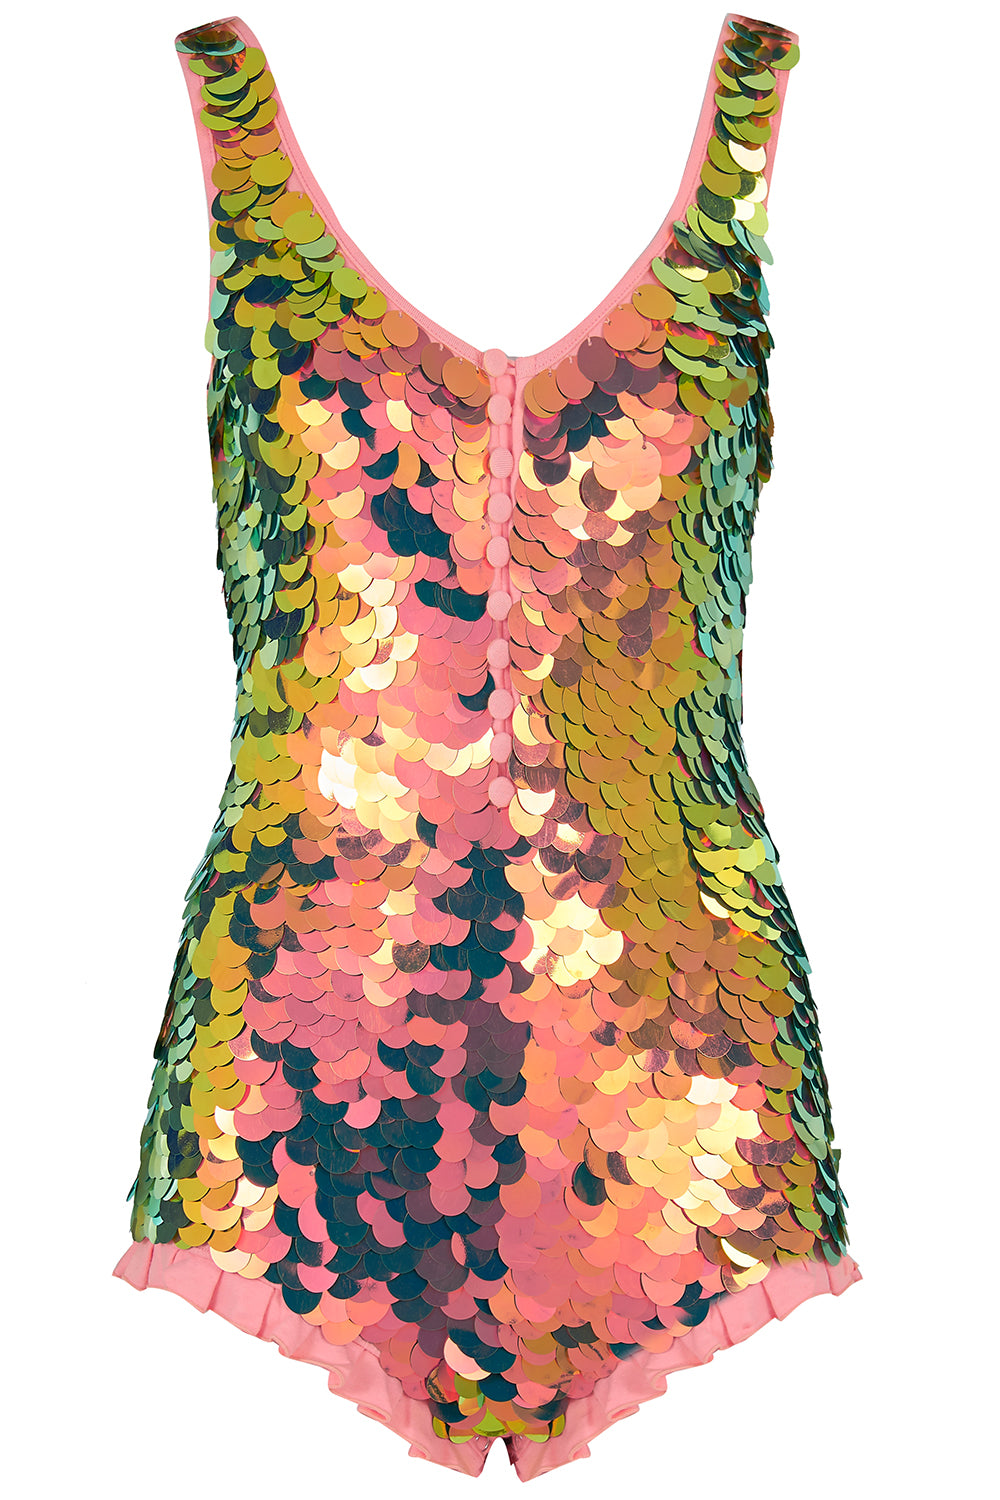 SEA CIRCUS SEQUIN PLAYSUIT - FLAME